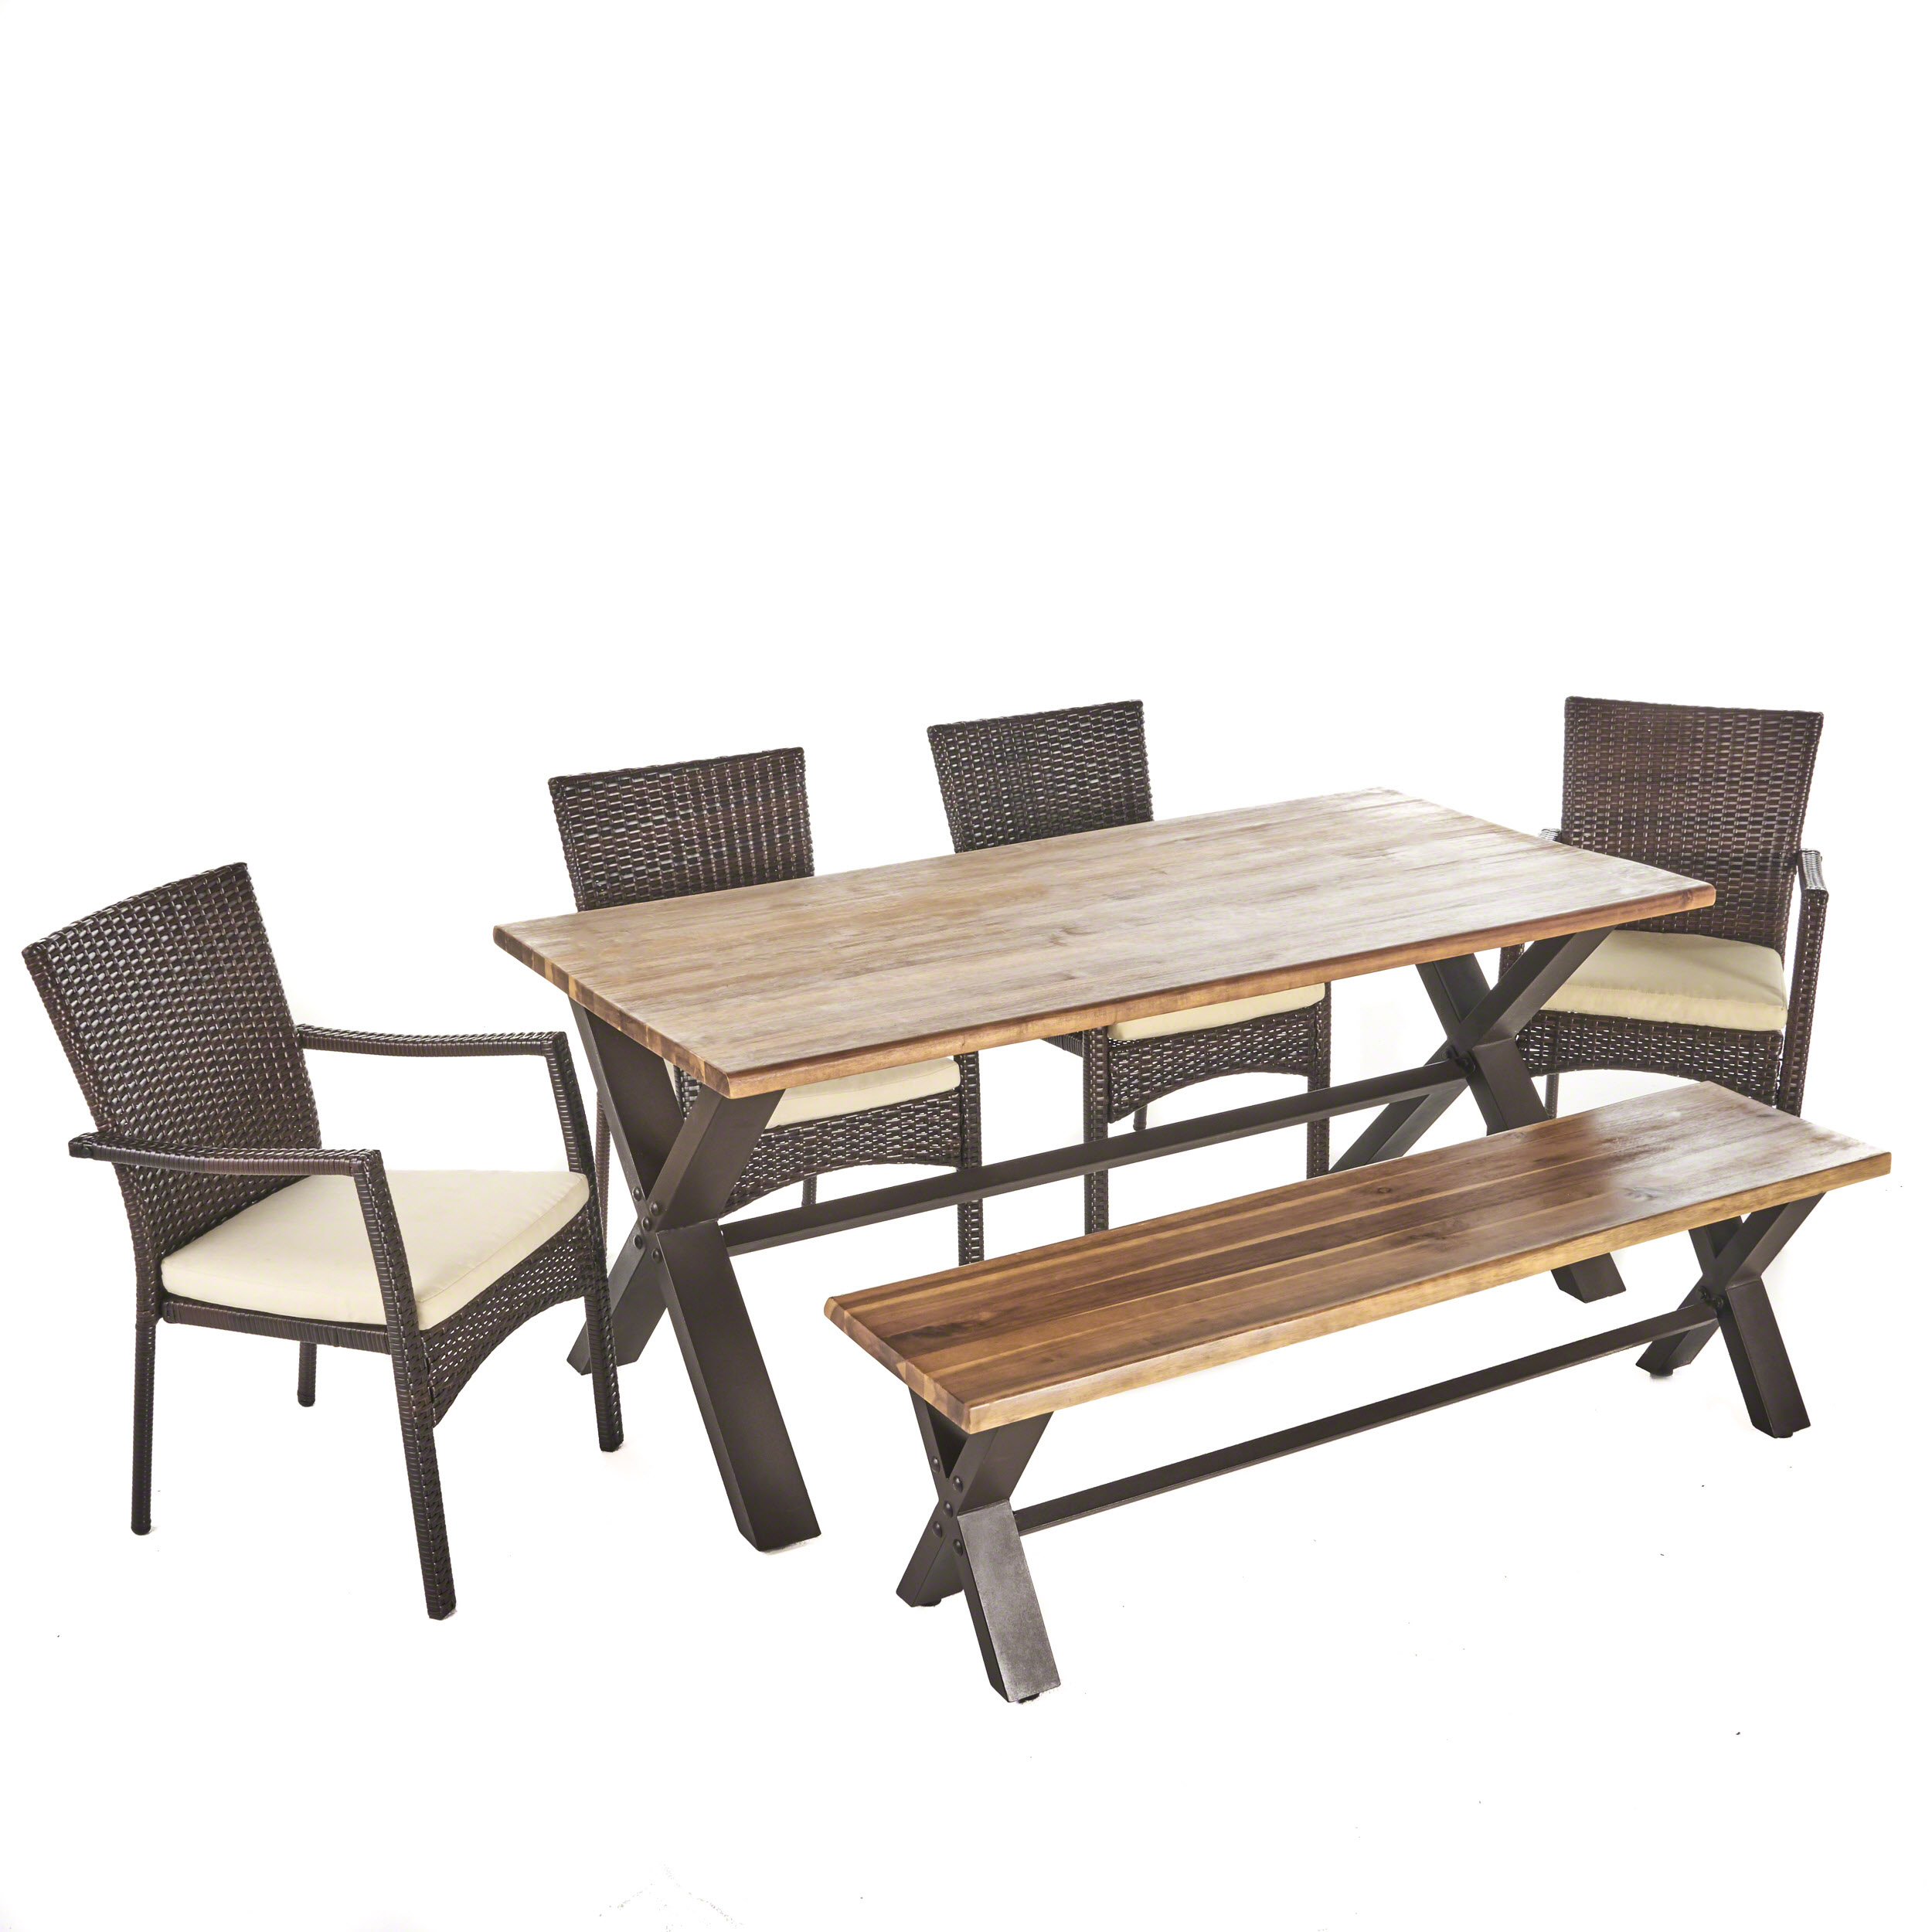 Brassel Outdoor 6 Piece Acacia Wood Dining Set with Wicker Dining Chairs and Water Resistant Cushions, Teak Finish